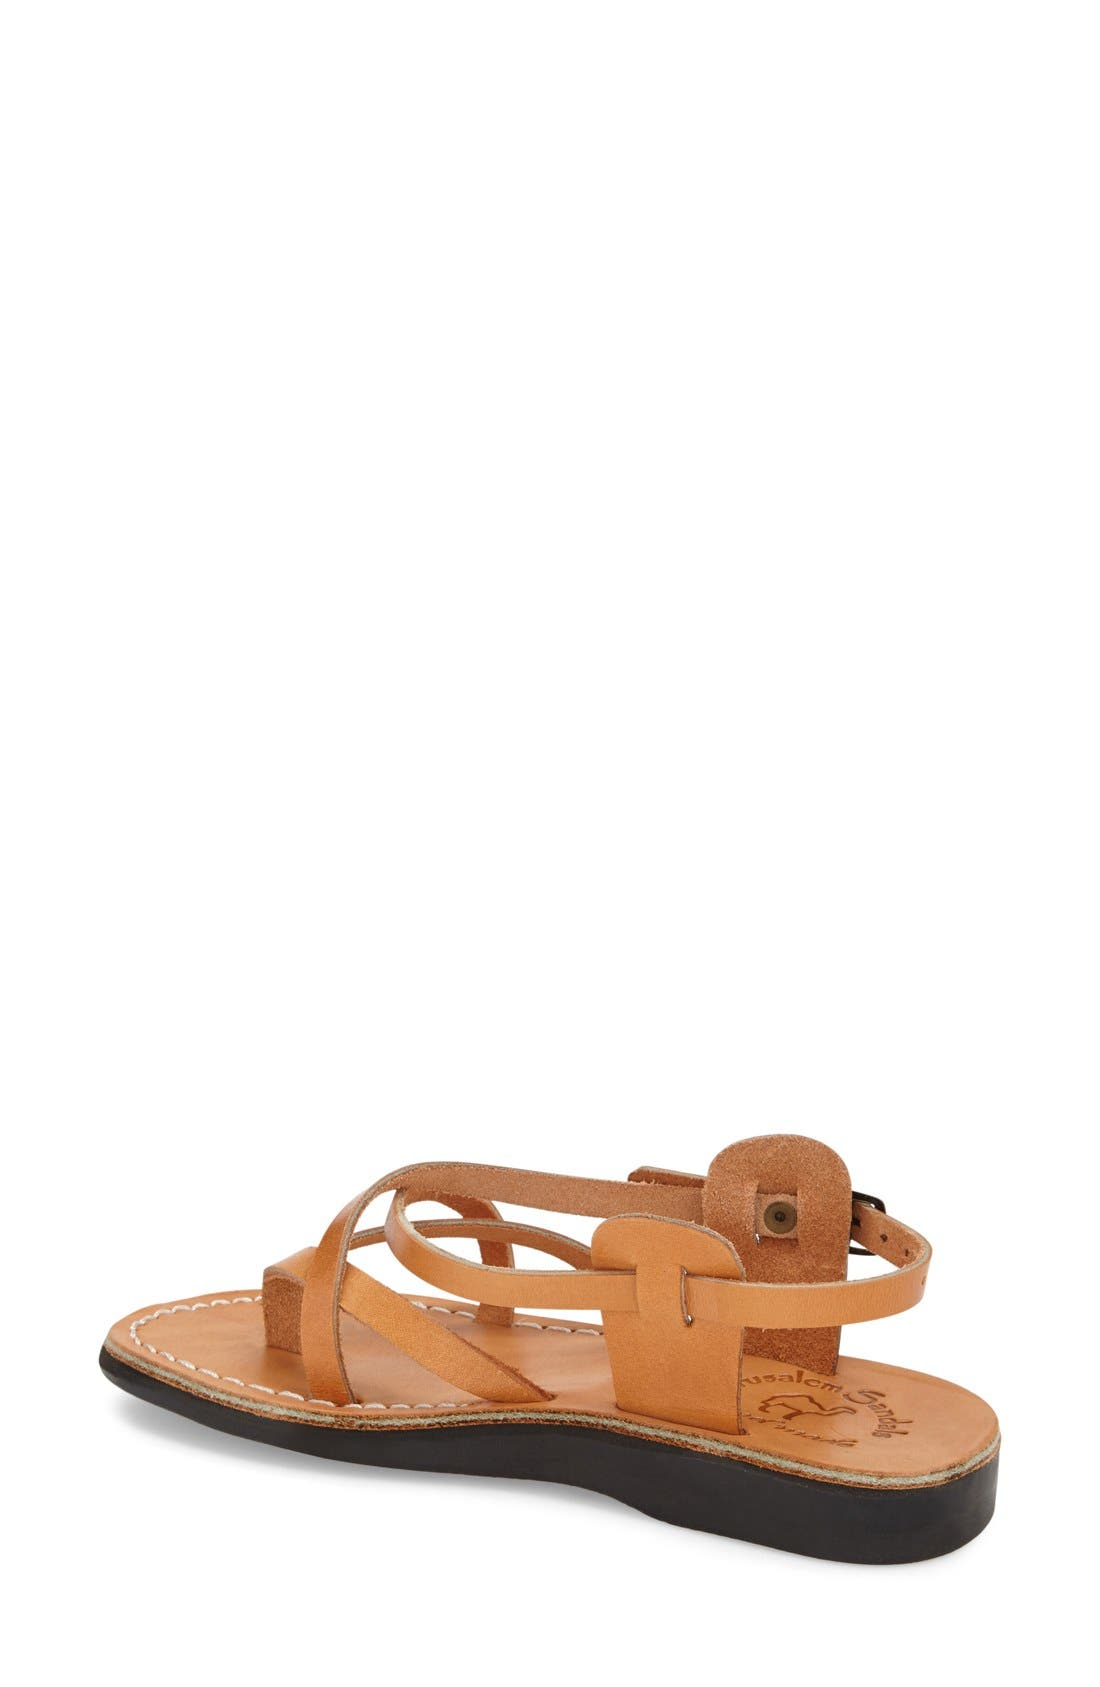 'Tamar' Strappy Sandal,                             Alternate thumbnail 2, color,                             201